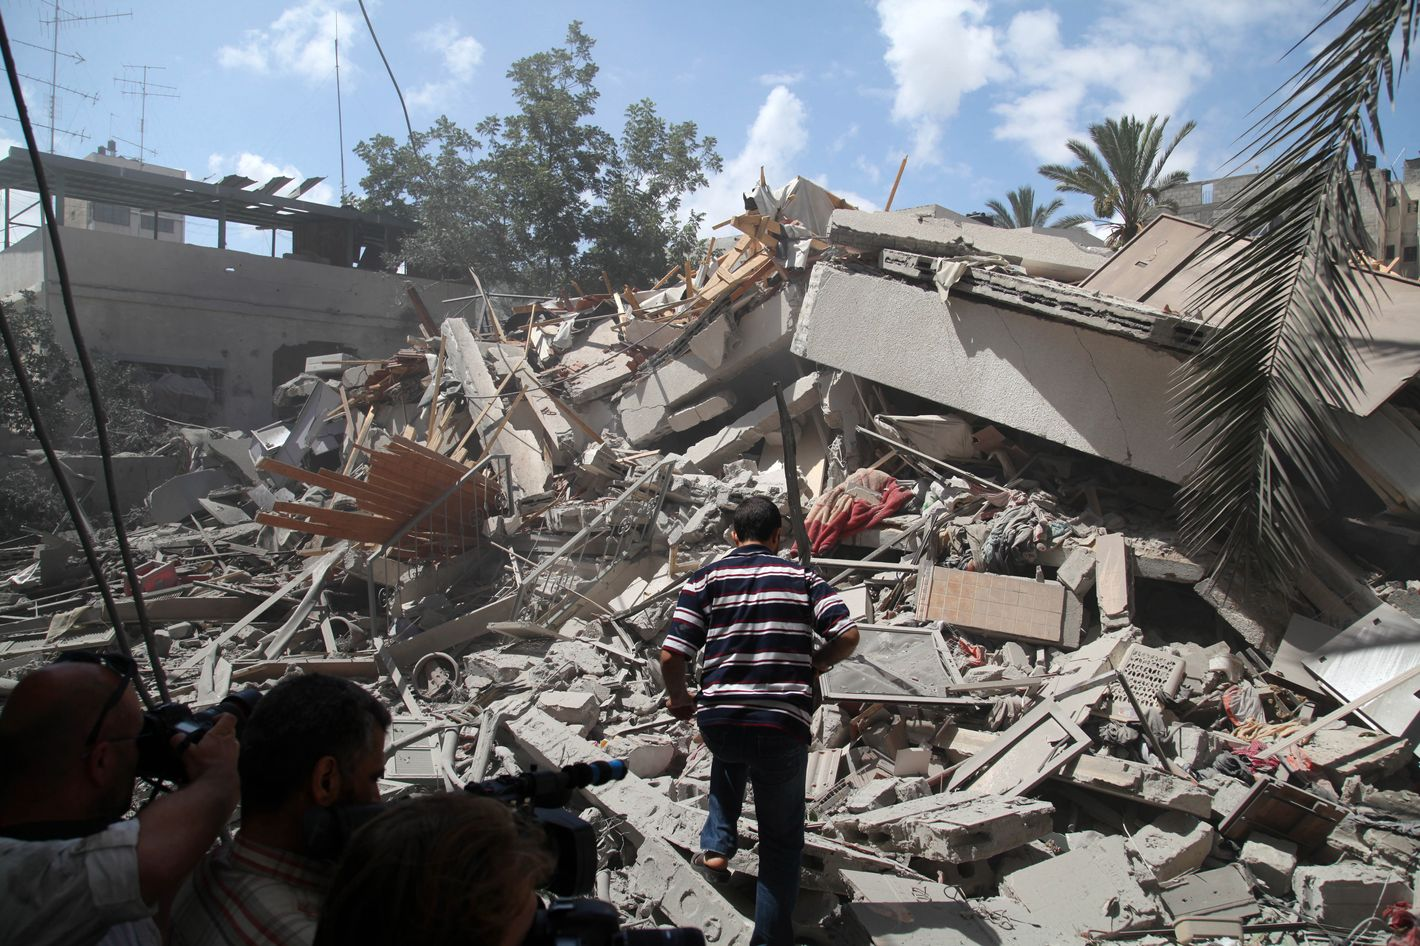 Palestinians look around a house which police said was targeted in Israeli air strikes in Gaza City.